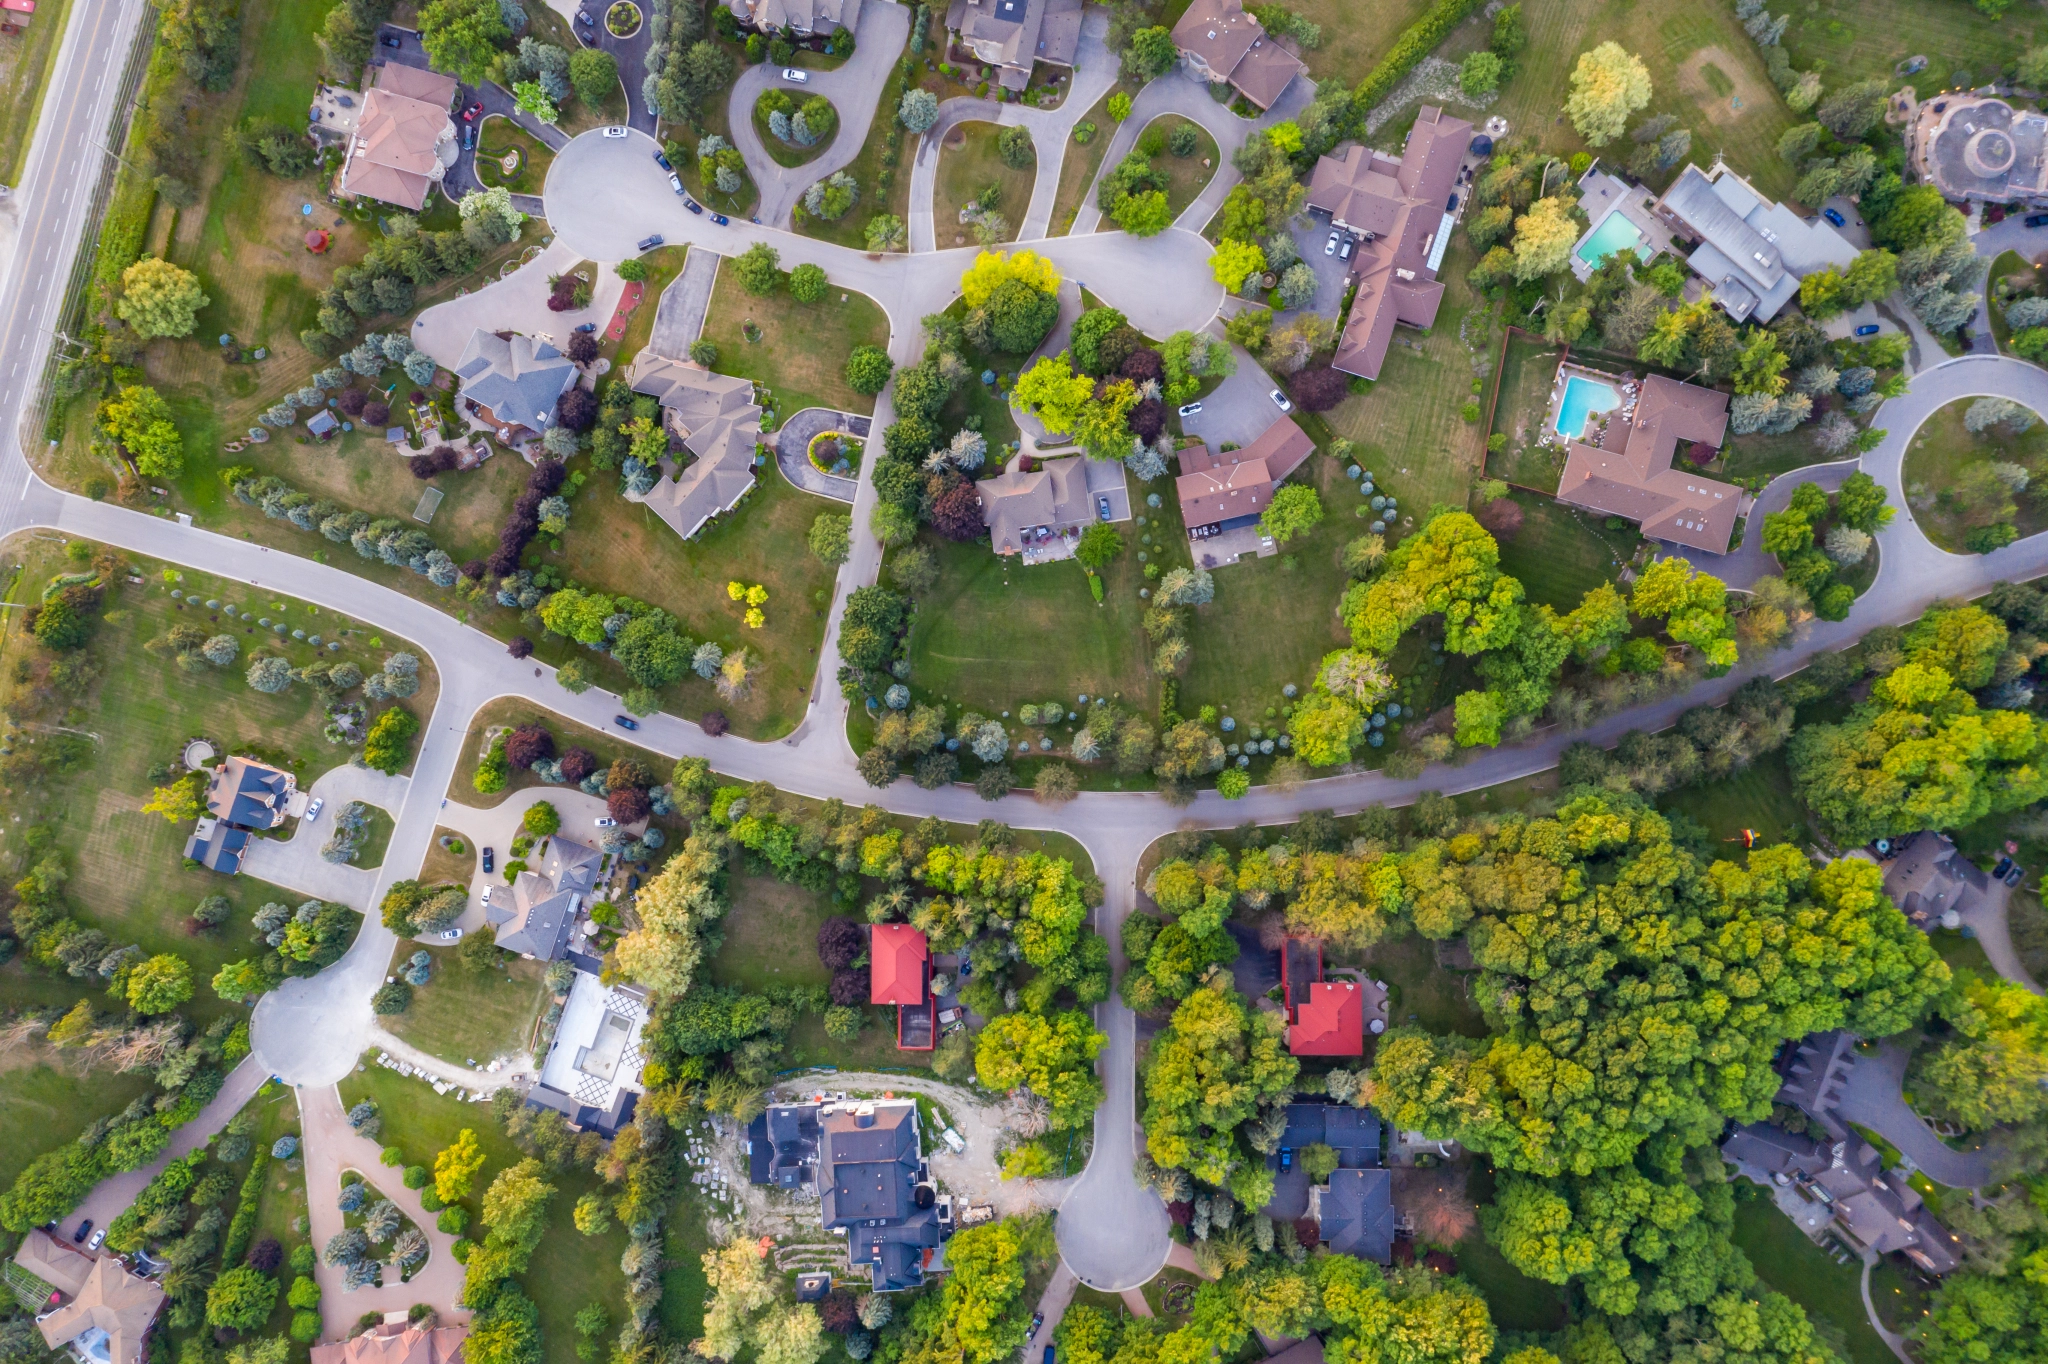 AS CANADIANS LAMENT RISING HOUSE PRICES, WHICH PARTY OFFERS SOLUTION AS FEDERAL ELECTION LOOMS?